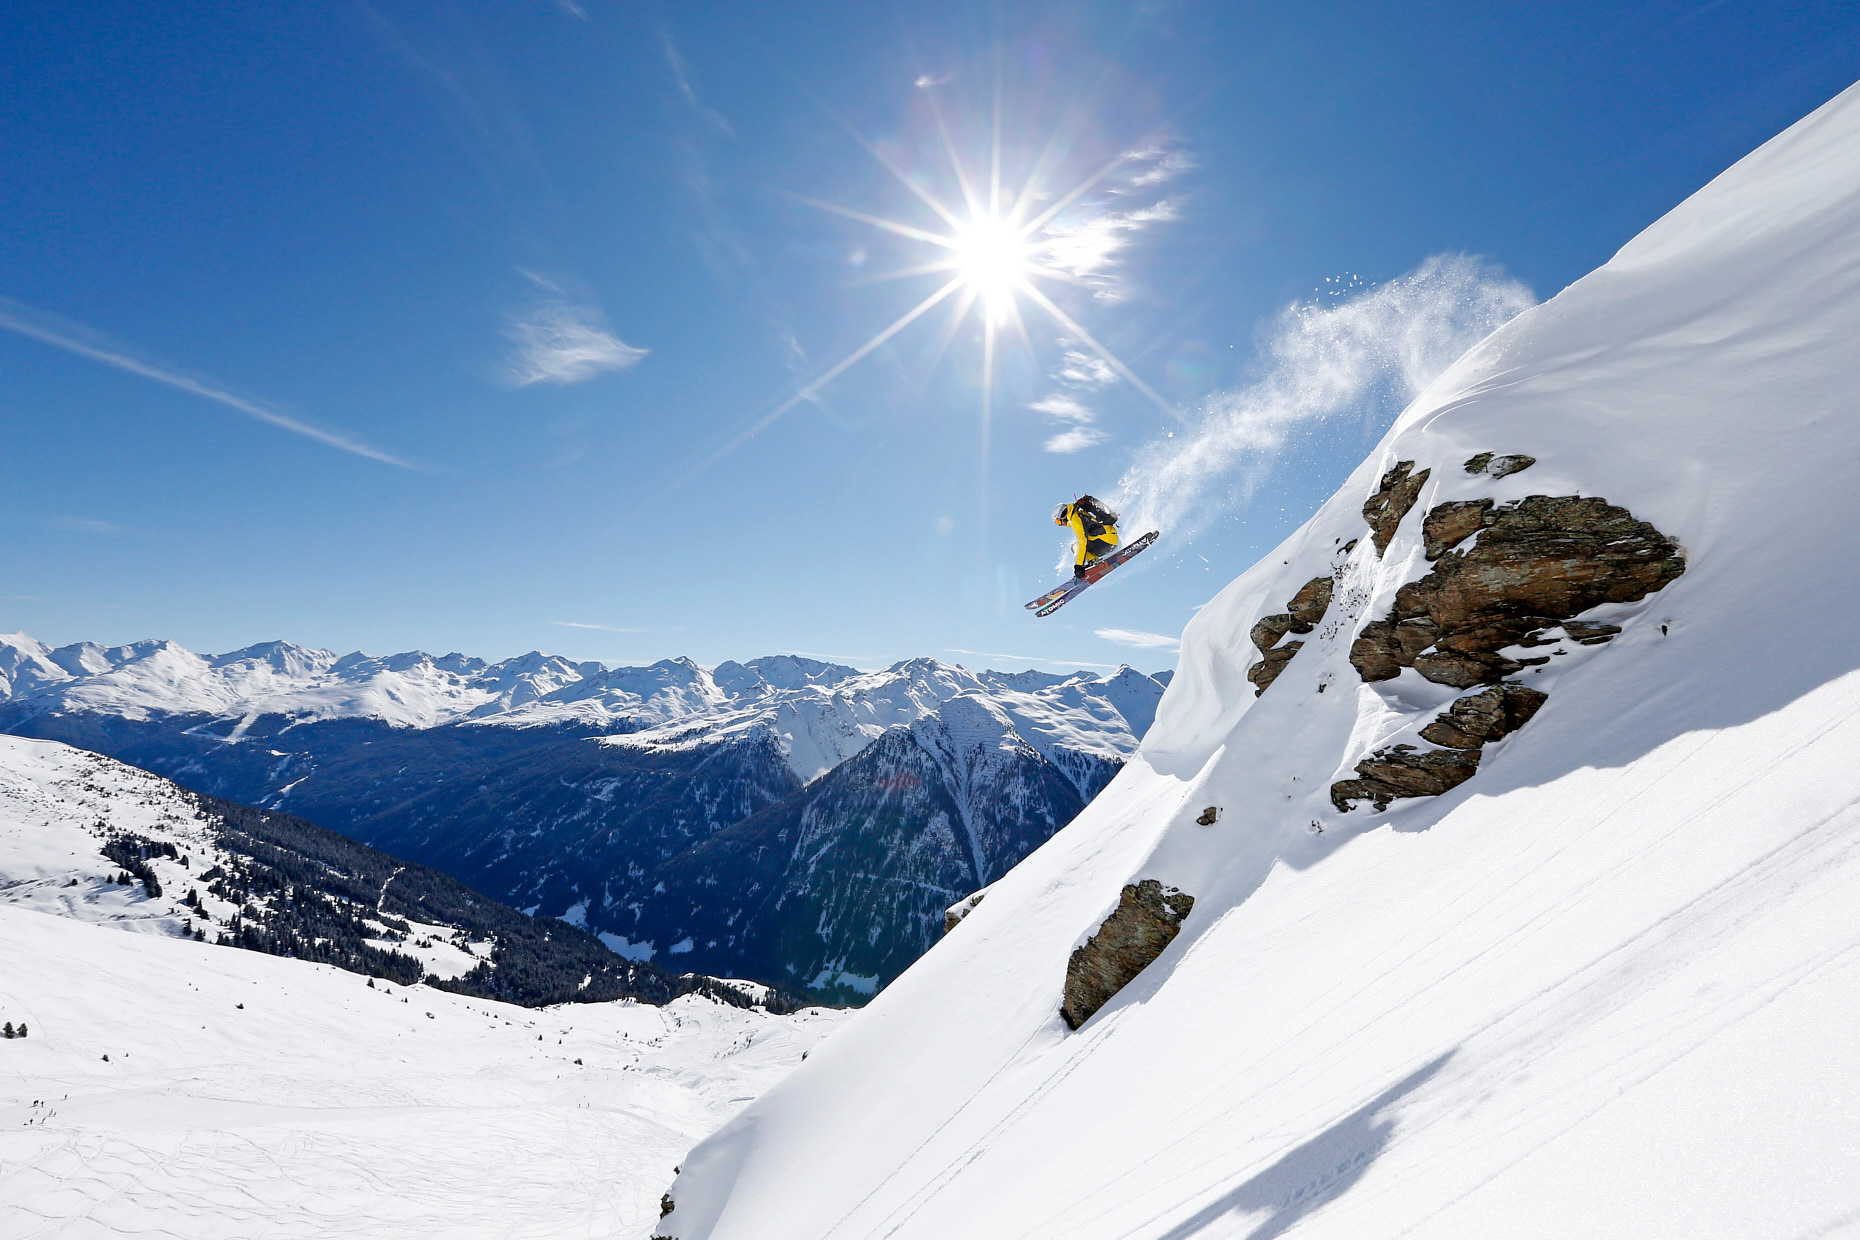 Freeski | Stefan Kuerzi Tourism Photography